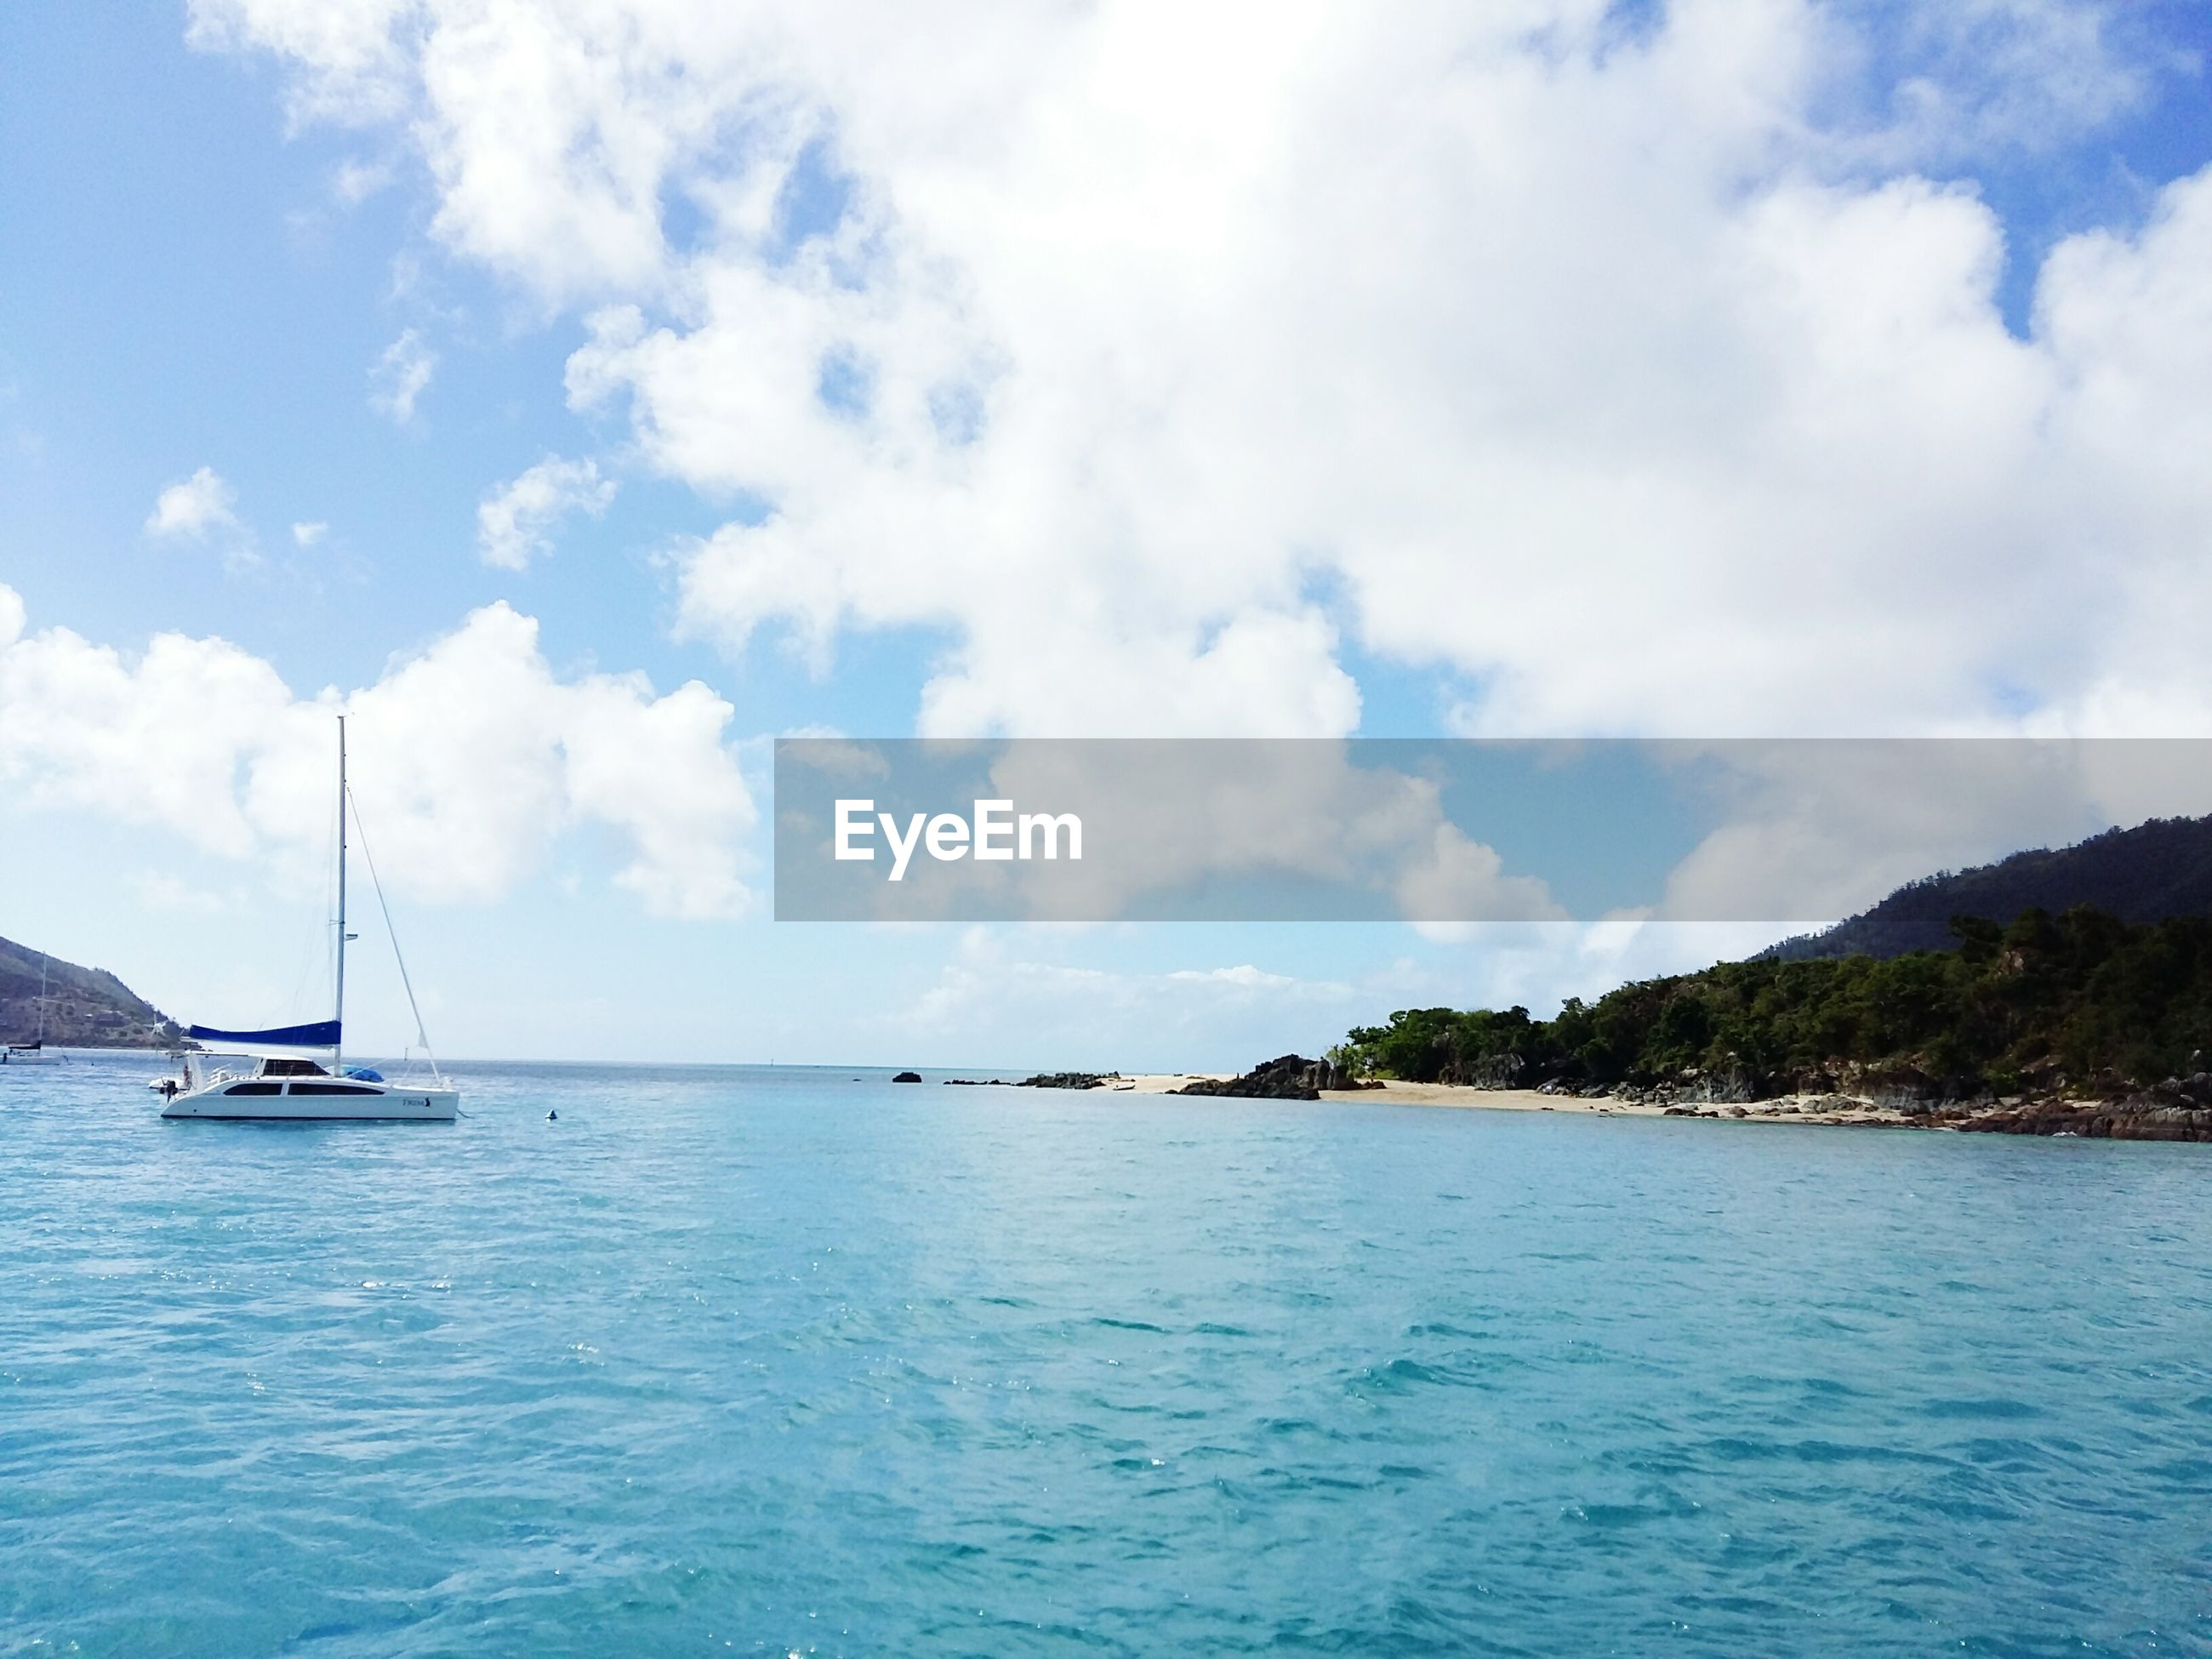 water, nautical vessel, sea, sky, boat, mode of transport, tranquil scene, tranquility, scenics, cloud - sky, beauty in nature, rippled, nature, cloud, blue, sailboat, sailing, day, mountain, cloudy, idyllic, outdoors, no people, mast, calm, non-urban scene, seascape, remote, ocean, non urban scene